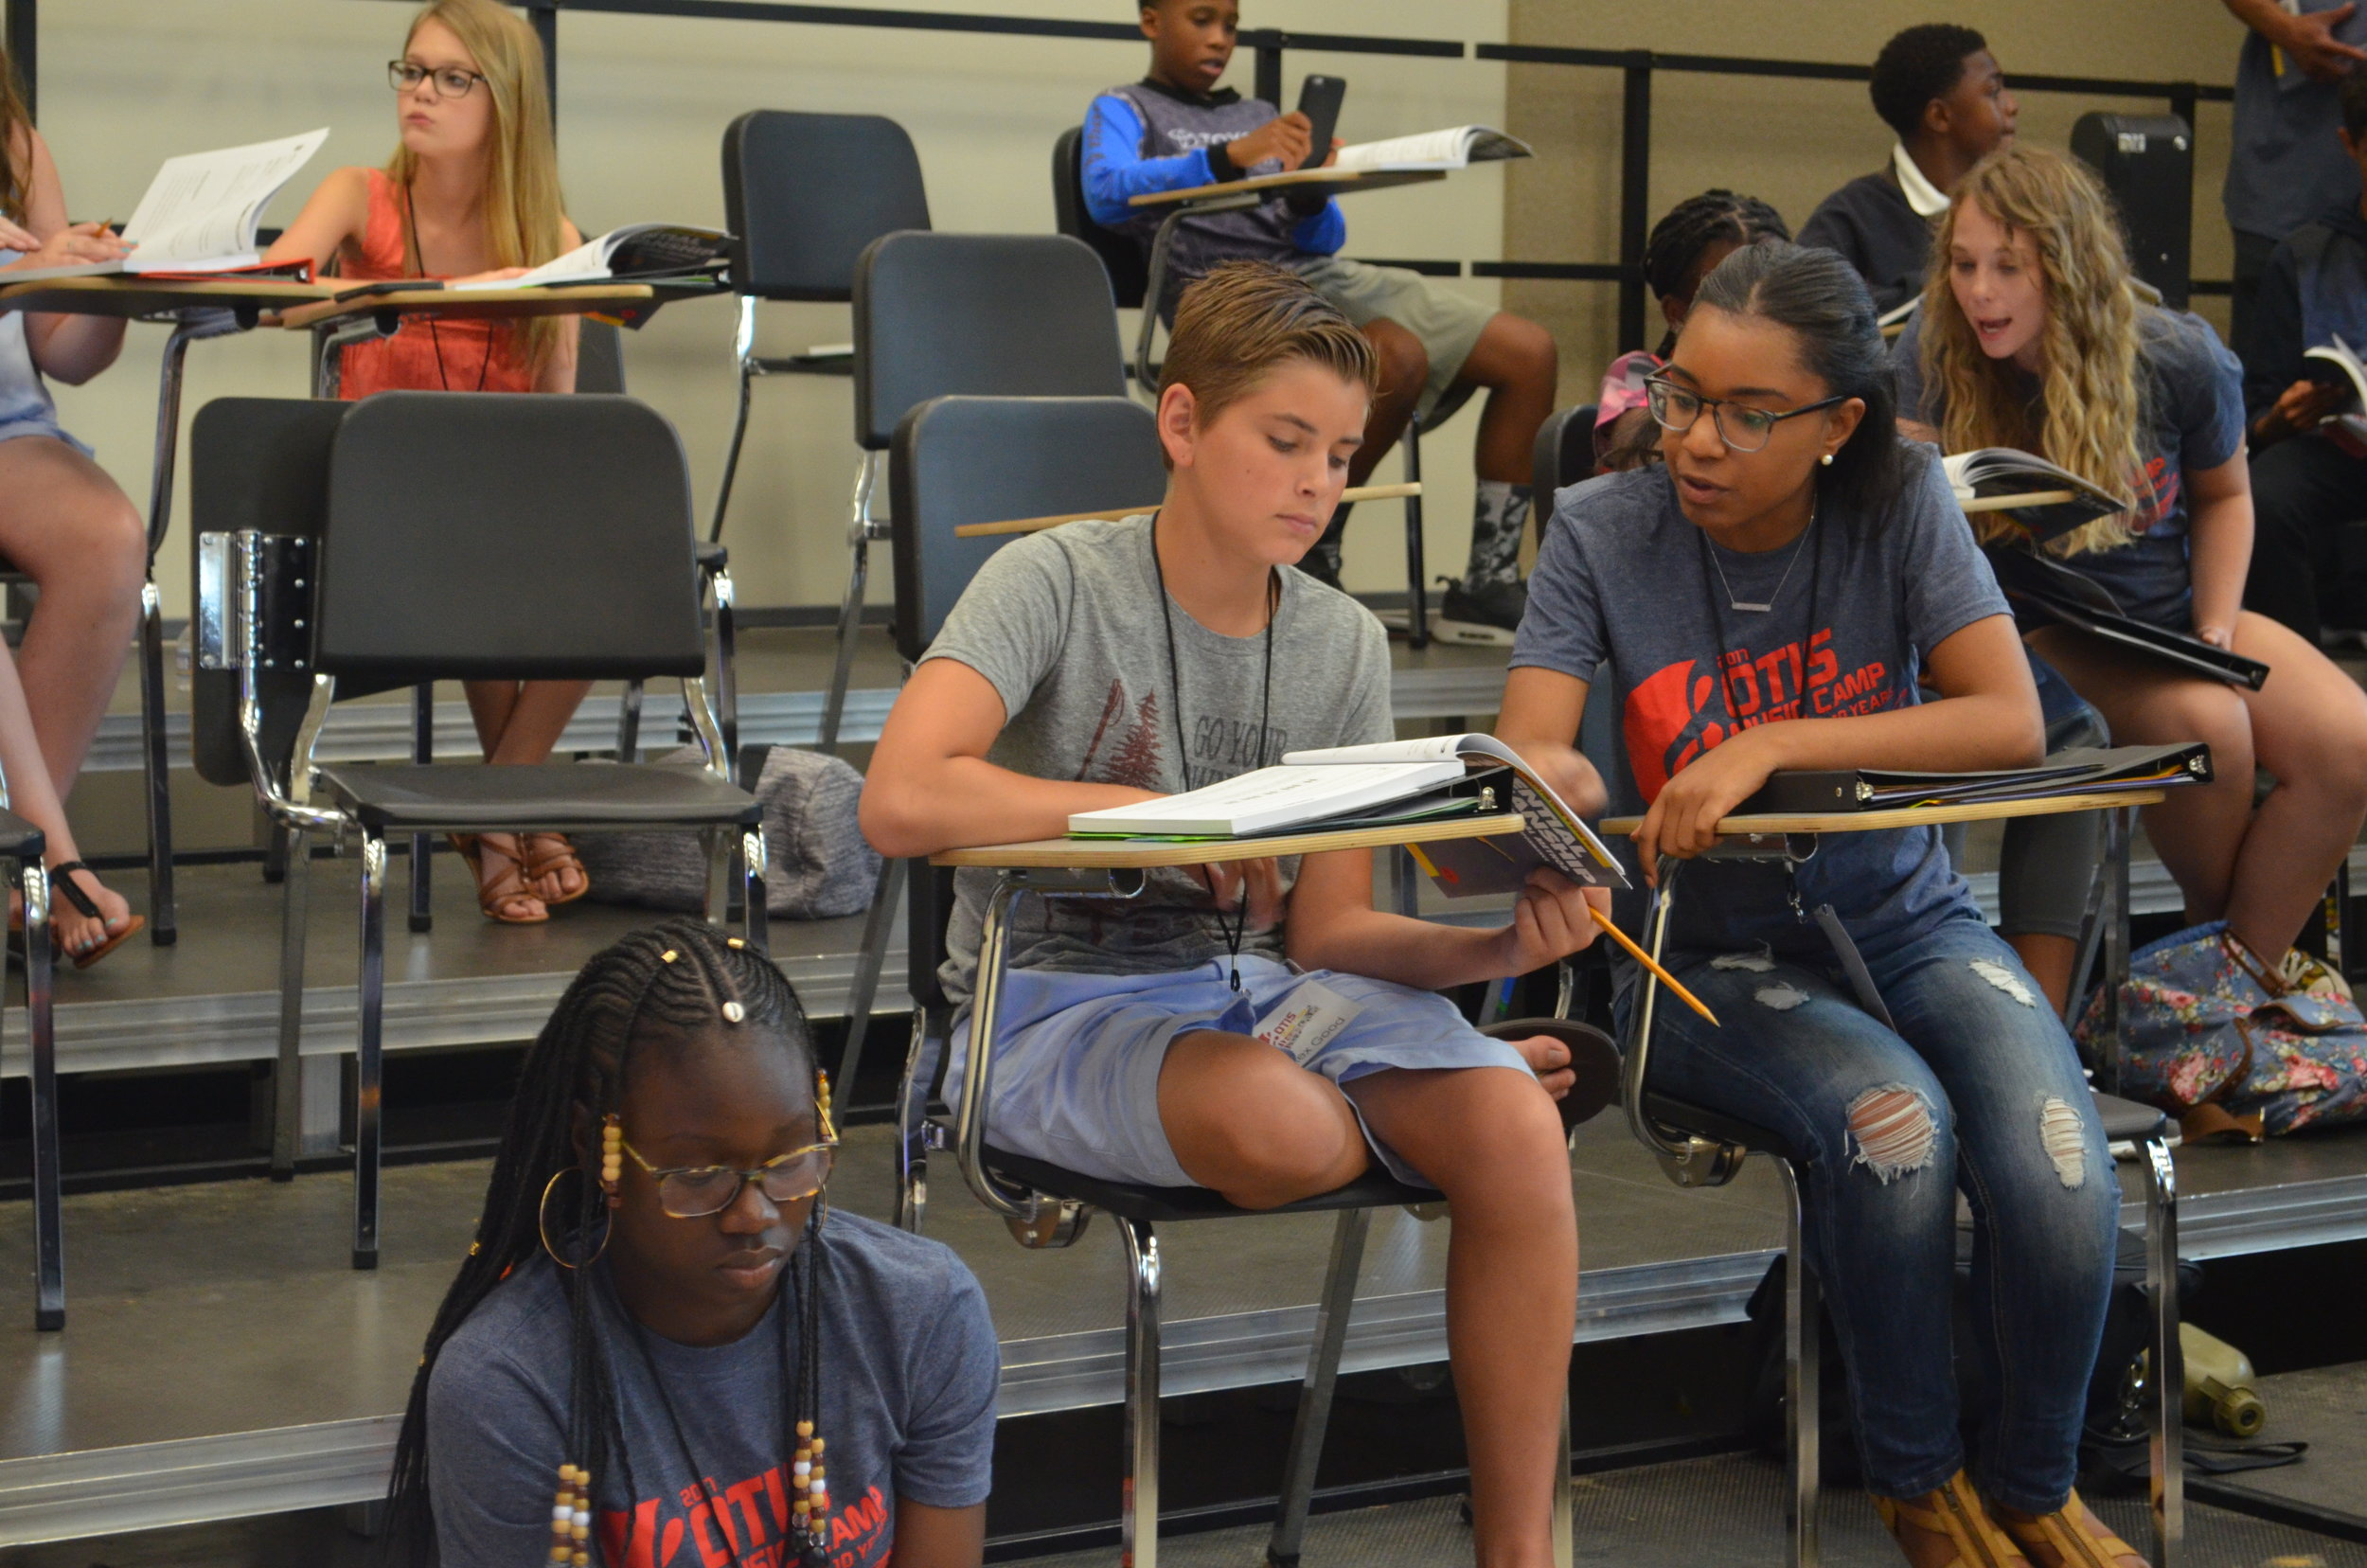 Each day of camp, Coach Ted White (not pictured) taught the campers music theory.